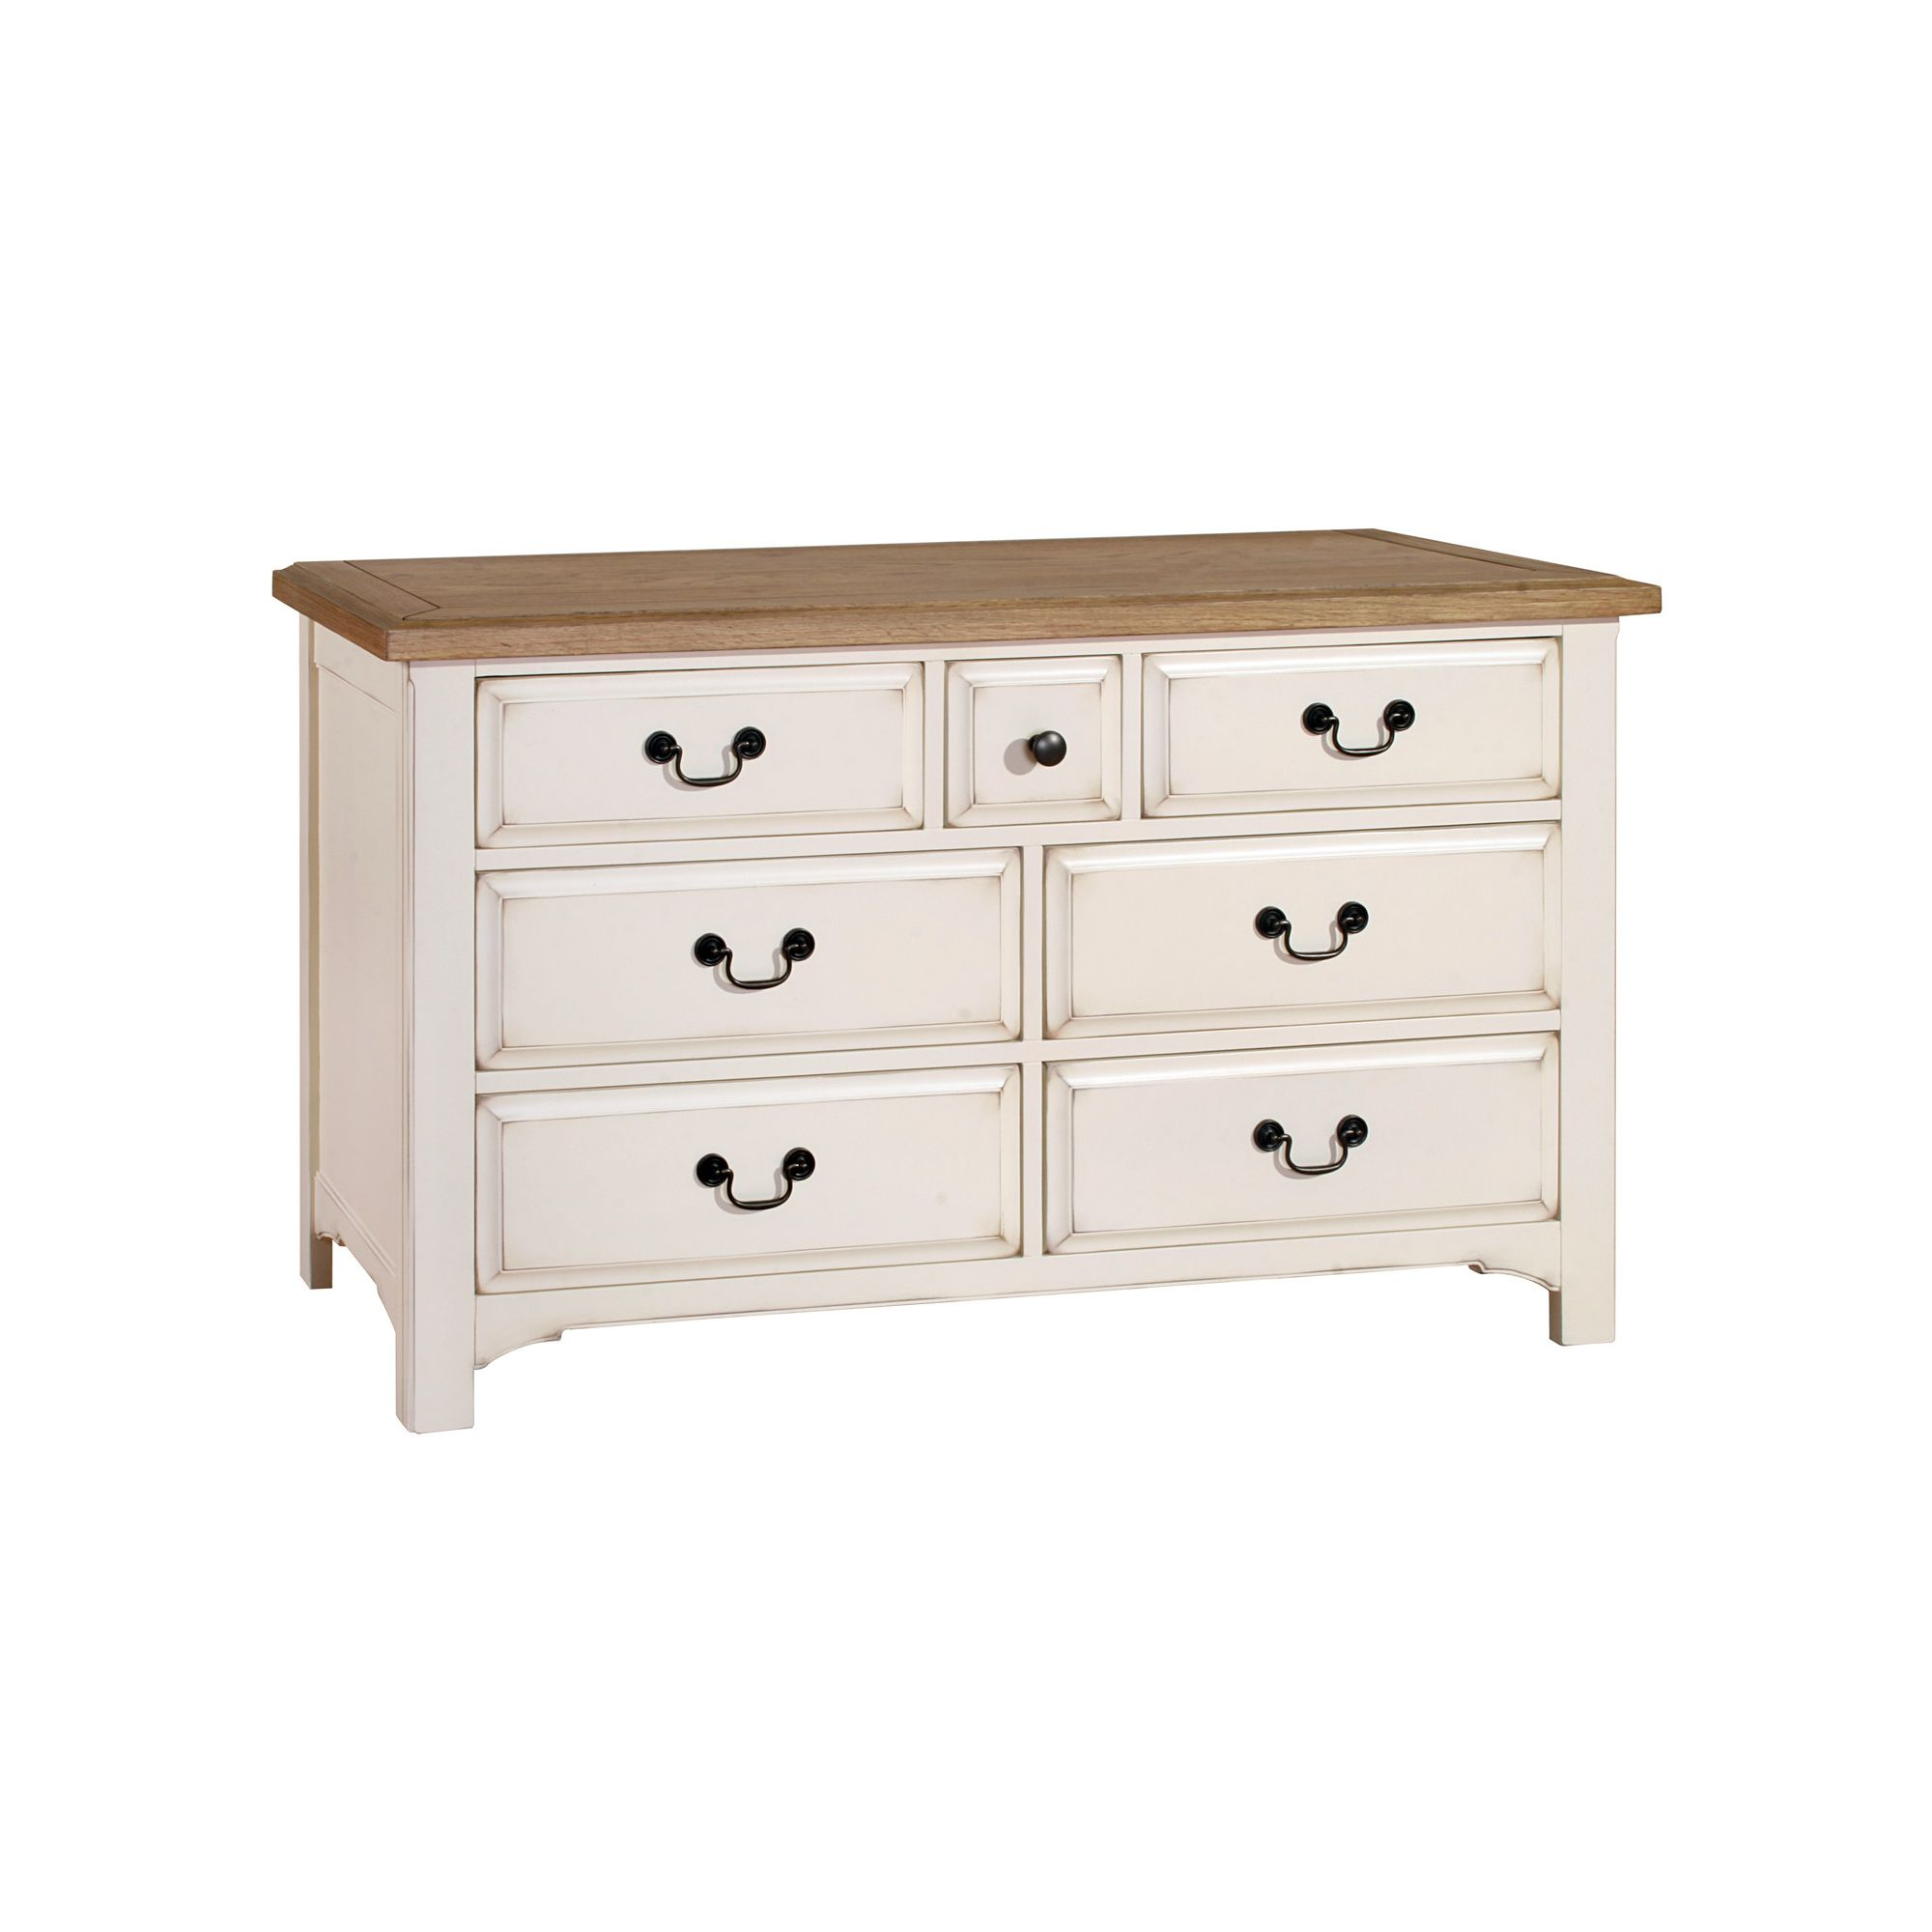 Alterton Furniture Marseille 3 over 4 Drawer Wide Chest at Tesco Direct